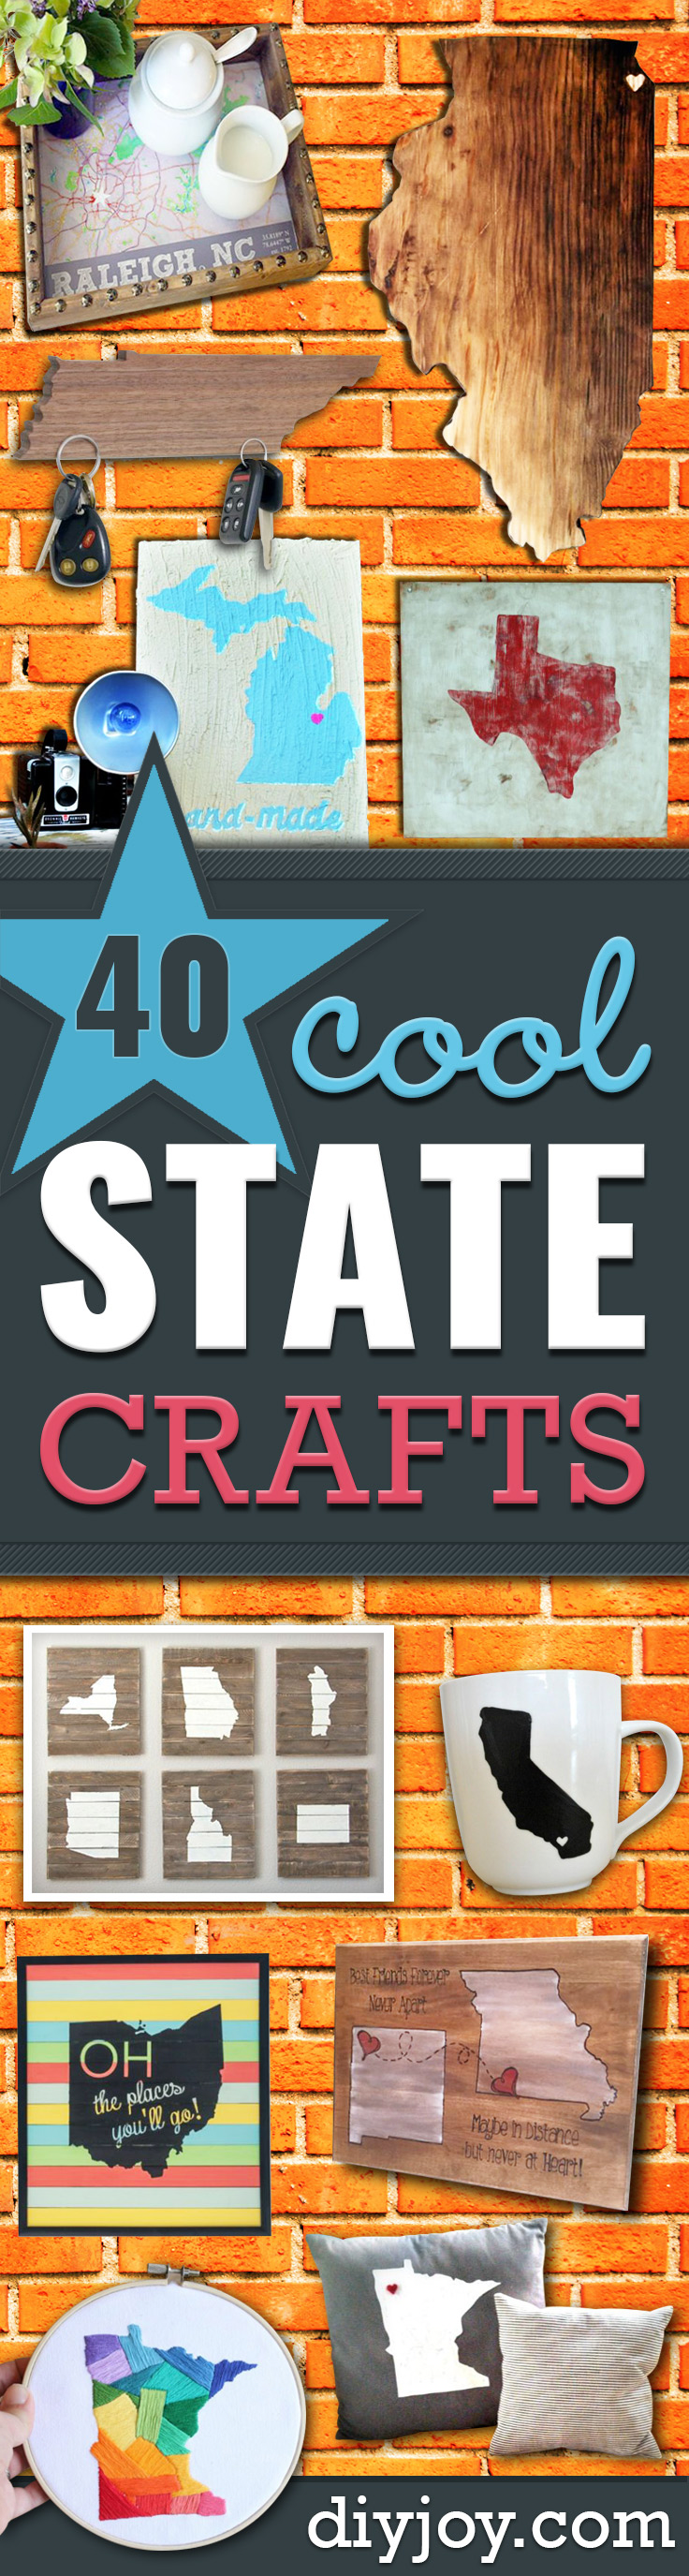 Cool State Crafts - Easy Craft Projects To Show Your Love For Your Home State - Best DIY Ideas Using Maps, String Art Shaped Like States, Quotes, Sayings and Wall Art Ideas, Painted Canvases, Cute Pillows, Fun Gifts and DIY Decor Made Simple - Creative Decorating Ideas for Living Room, Kitchen, Bedroom, Bath and Porch http://diyjoy.com/cool-state-crafts